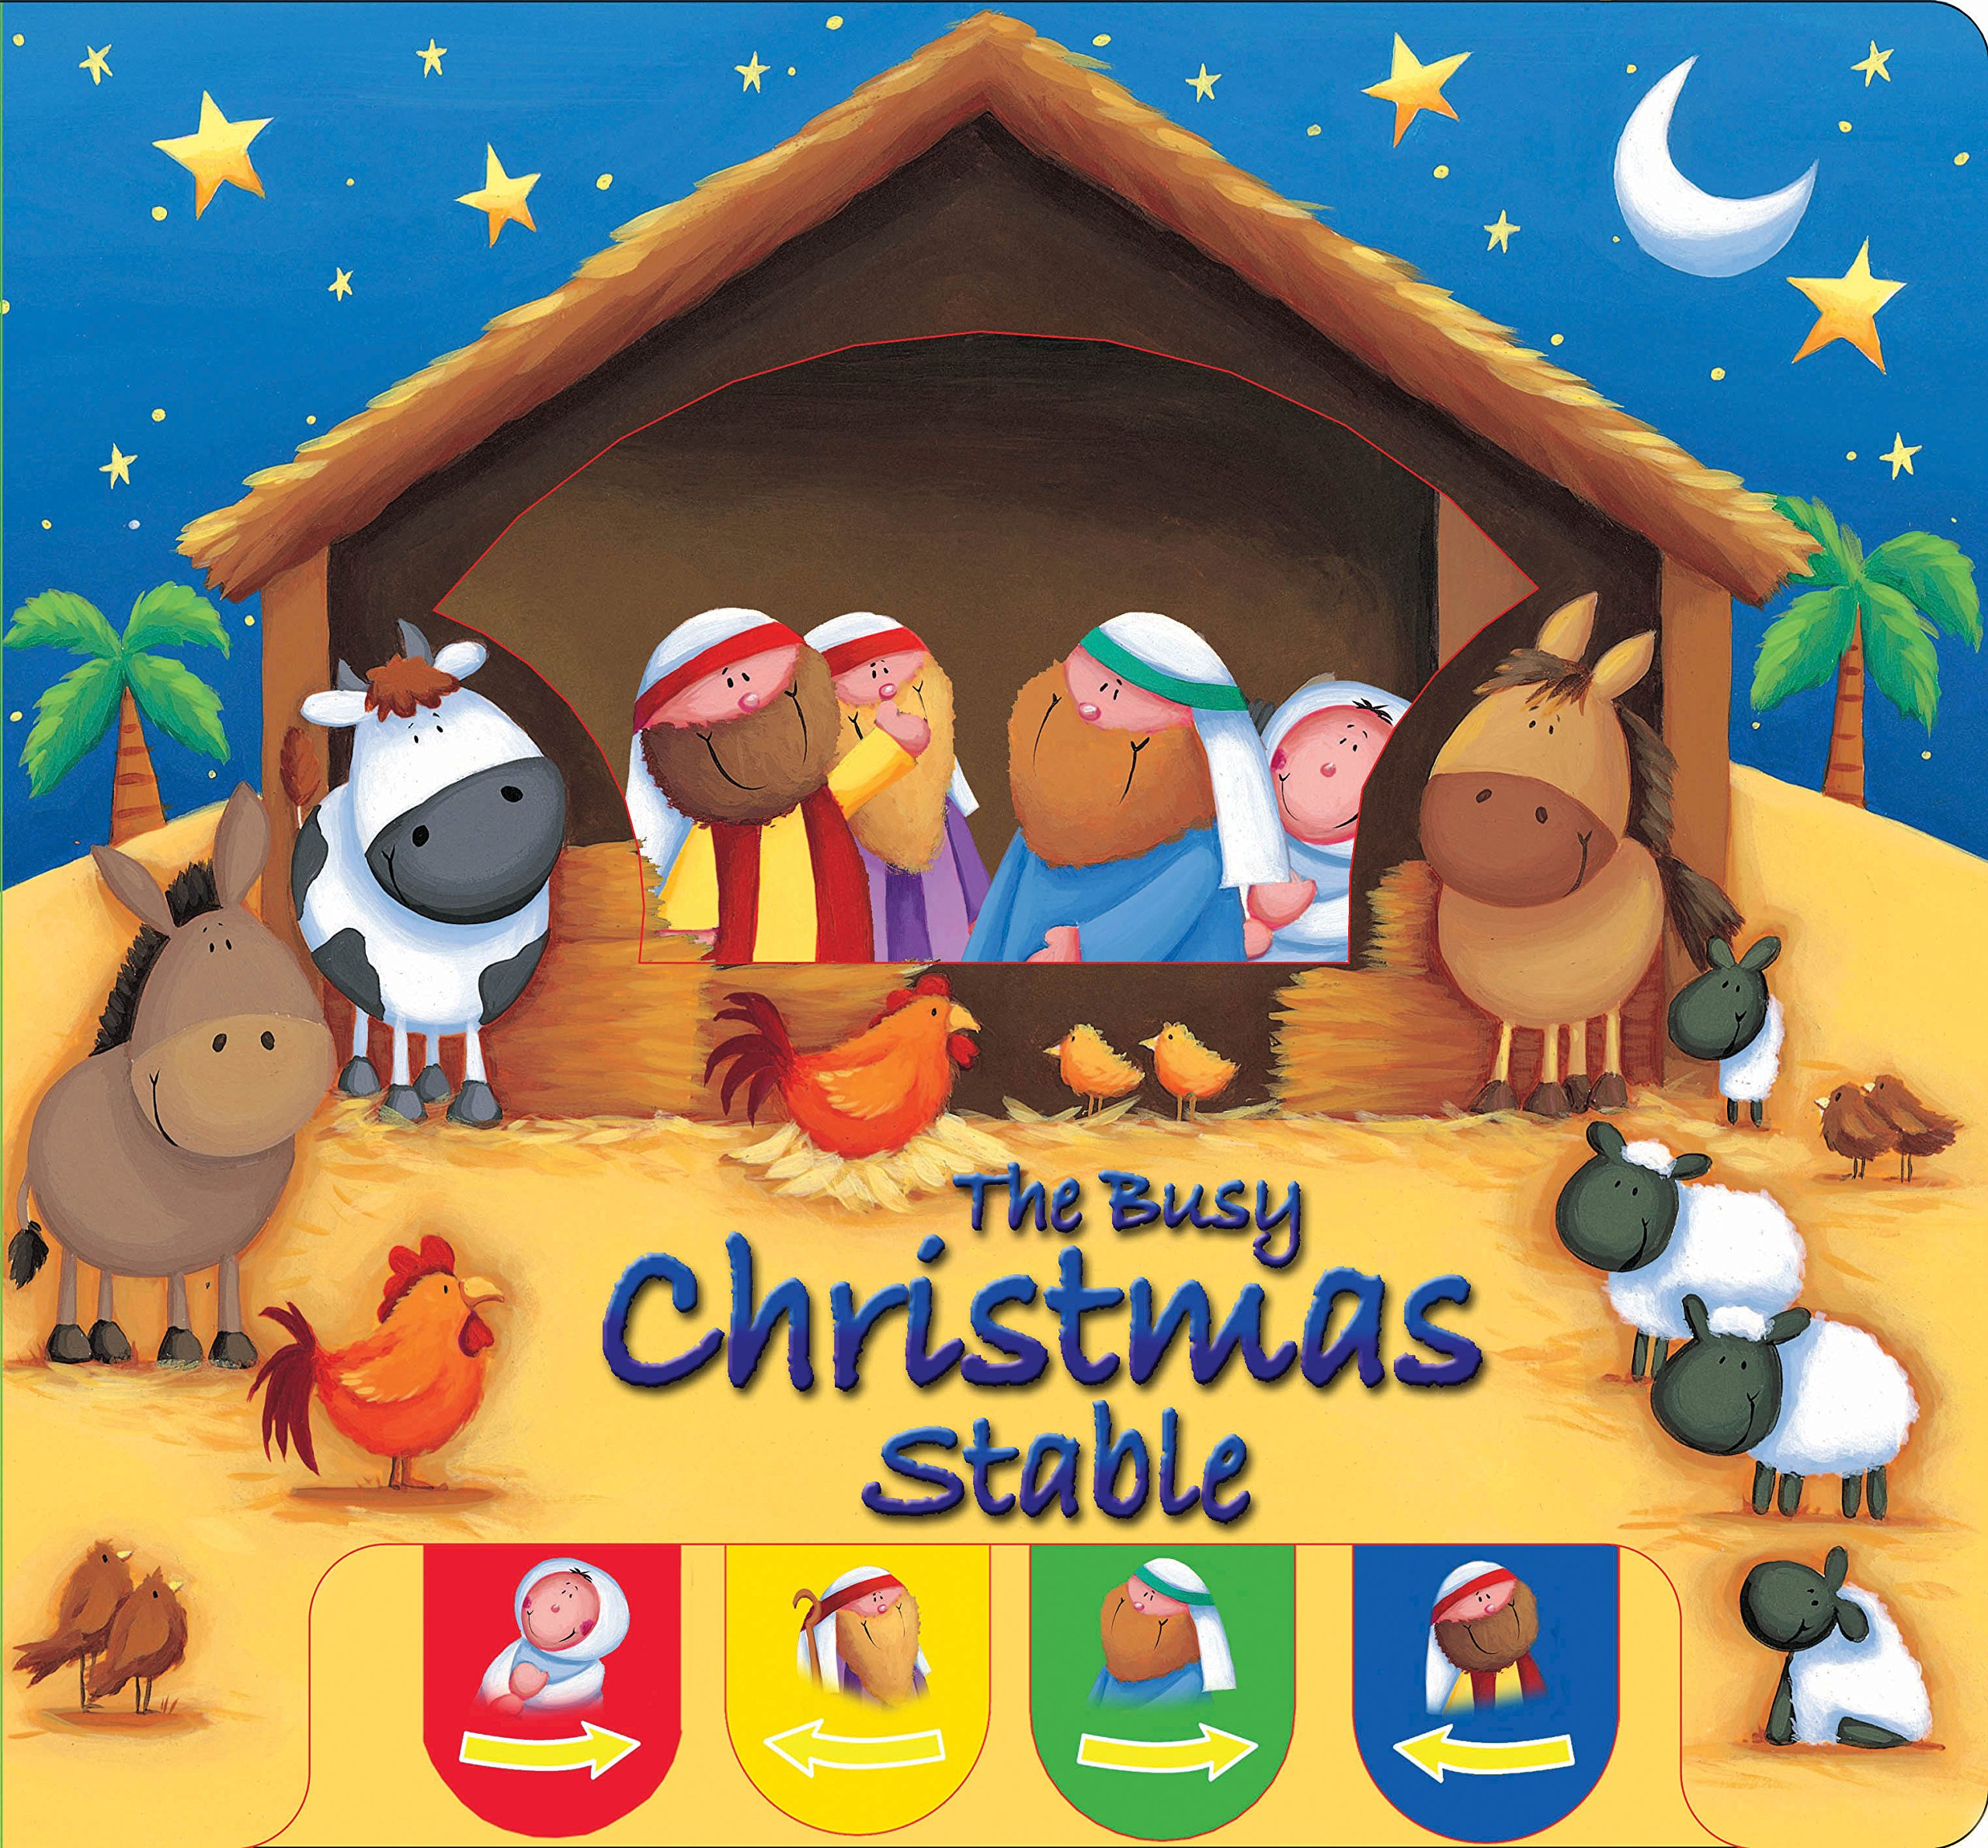 The Busy Christmas Stable (Candle Peek-a-boo) PDF